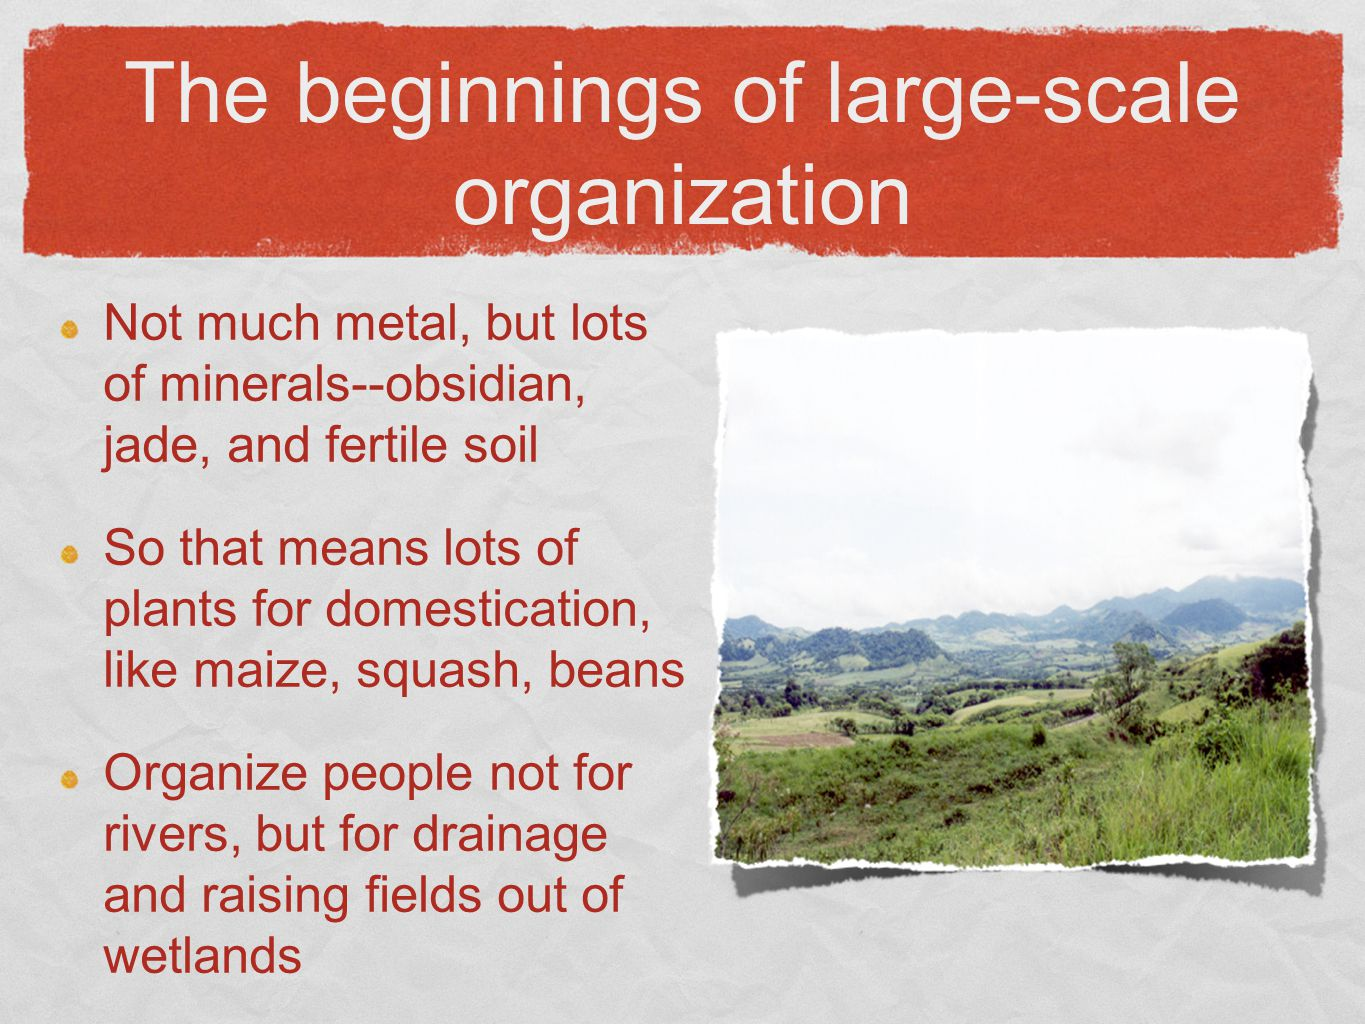 The beginnings of large-scale organization